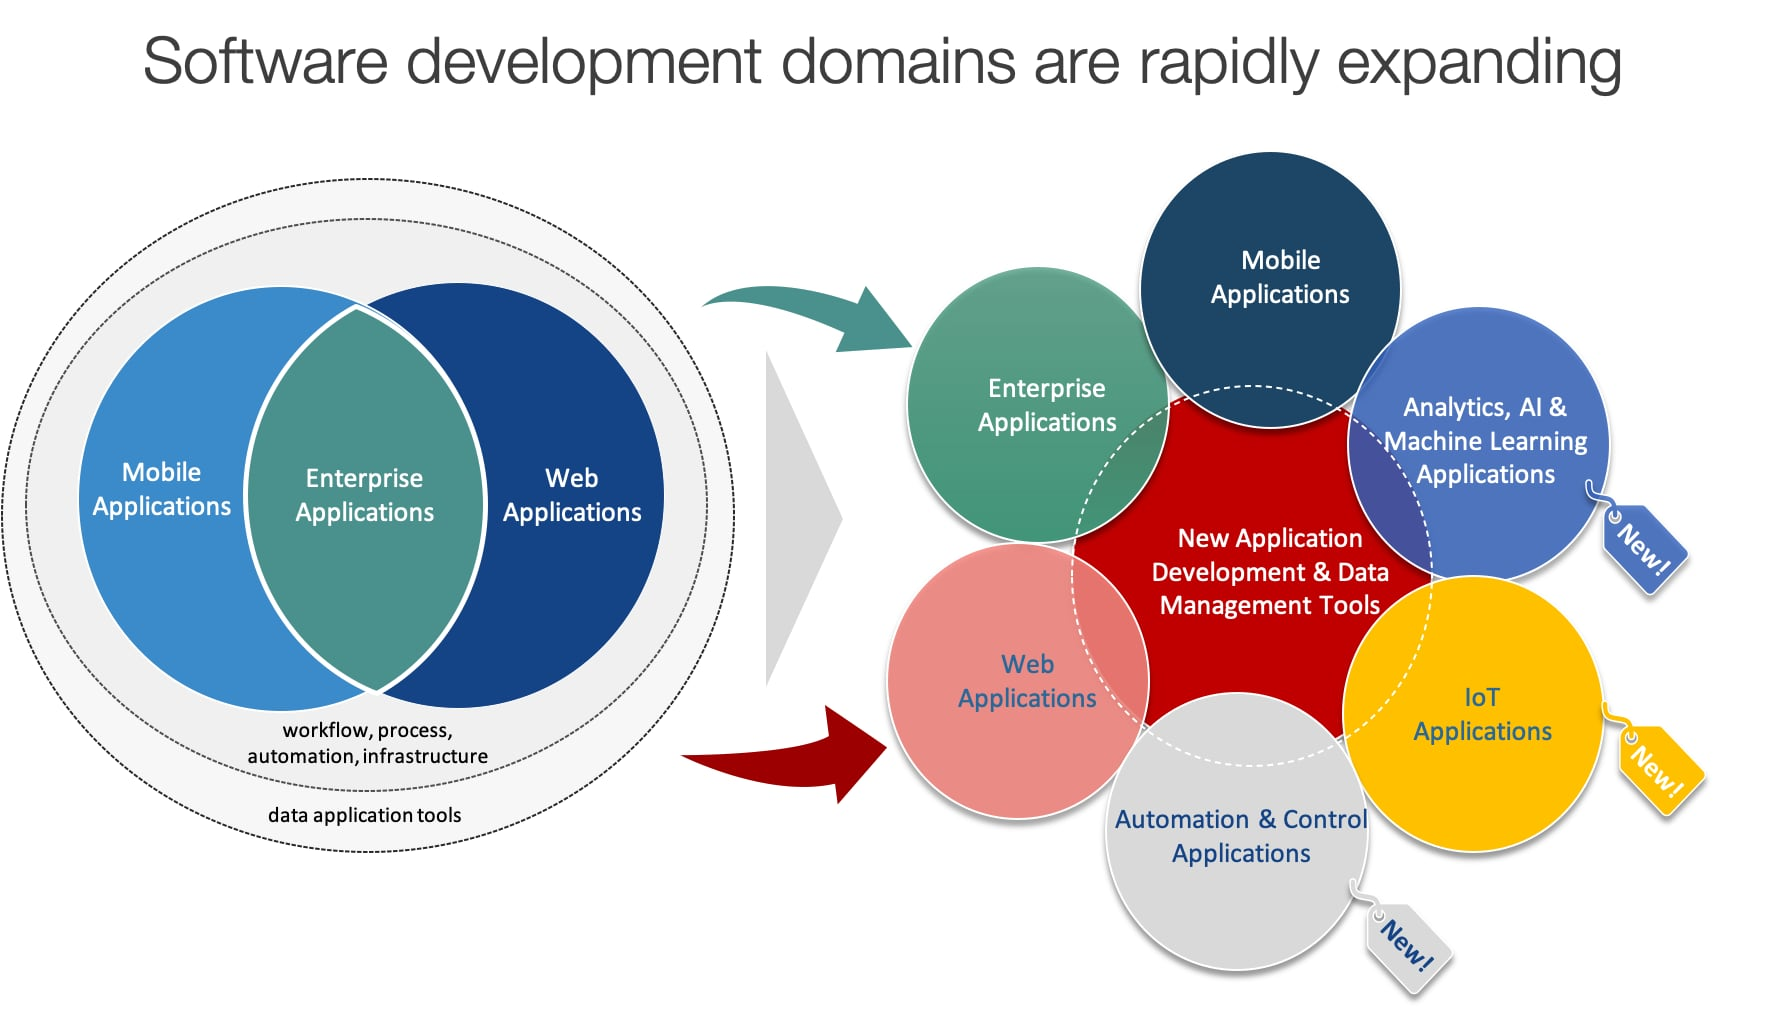 Software development domains are rapidly expanding